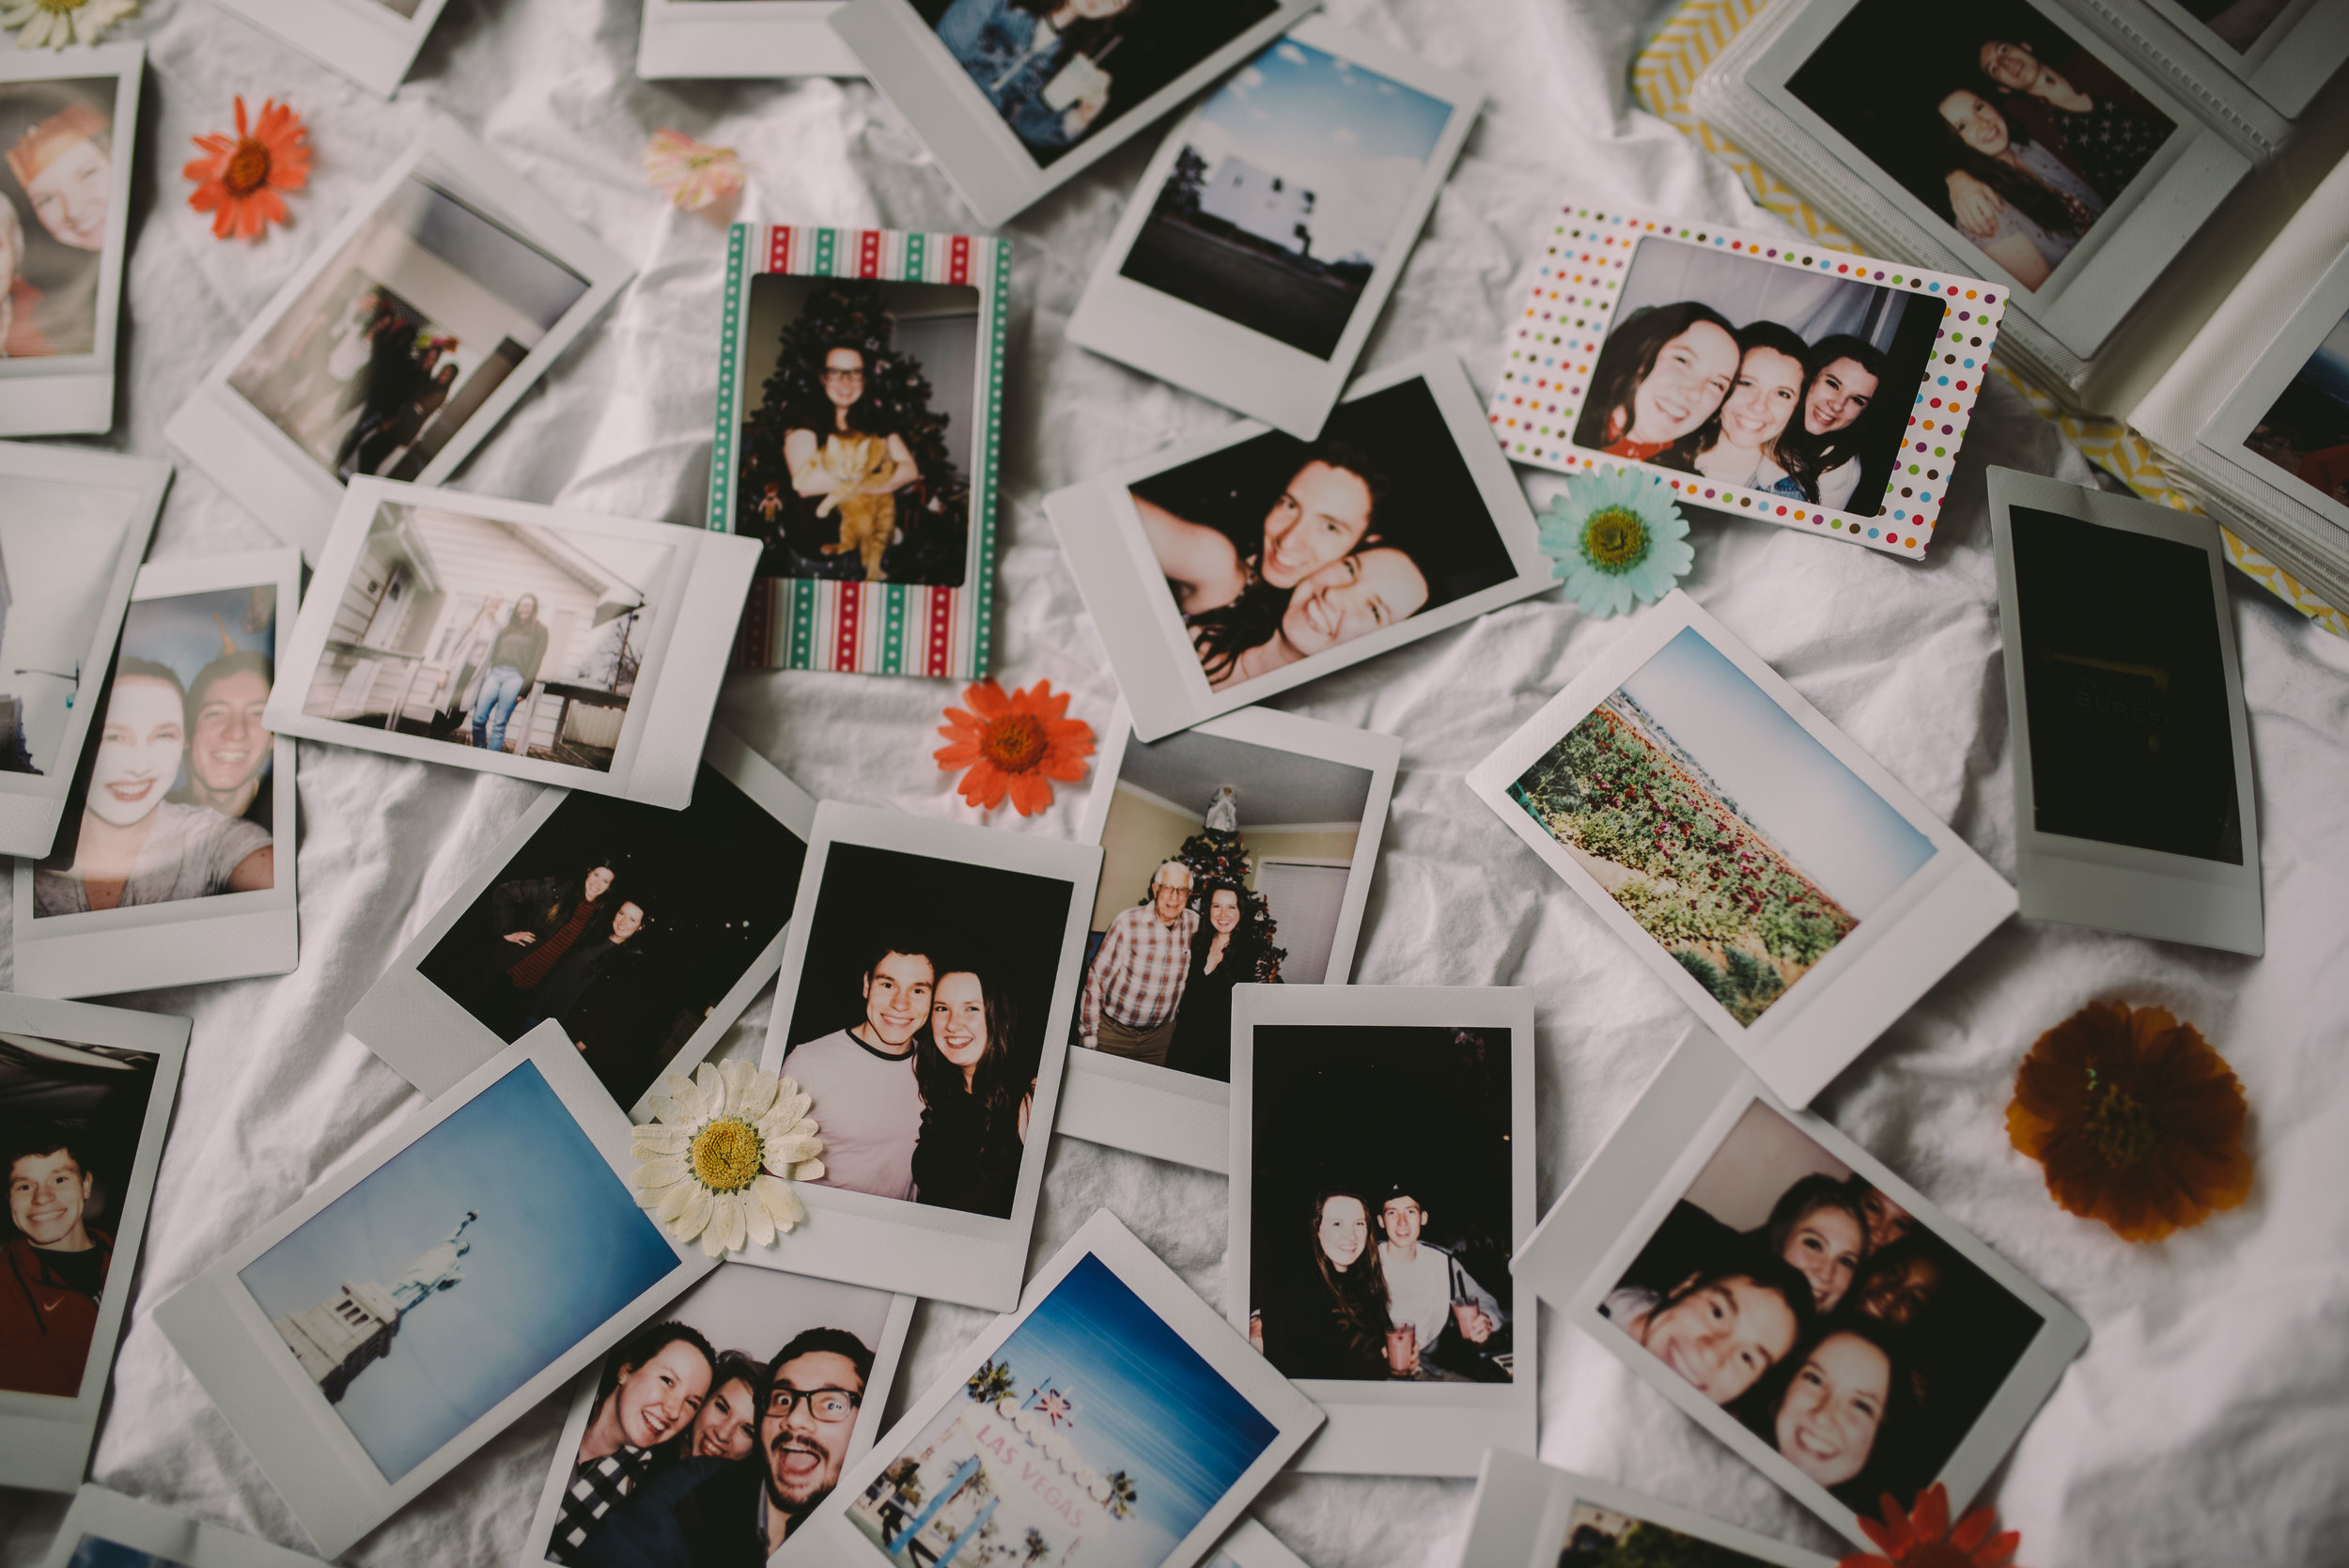 PolaroidMemories_May2018_TempeAZ_Portrait Photography In Tempe Arizona_ArizonaPortraitPhotographer_SamanthaRosePhotography_final_-11.jpg